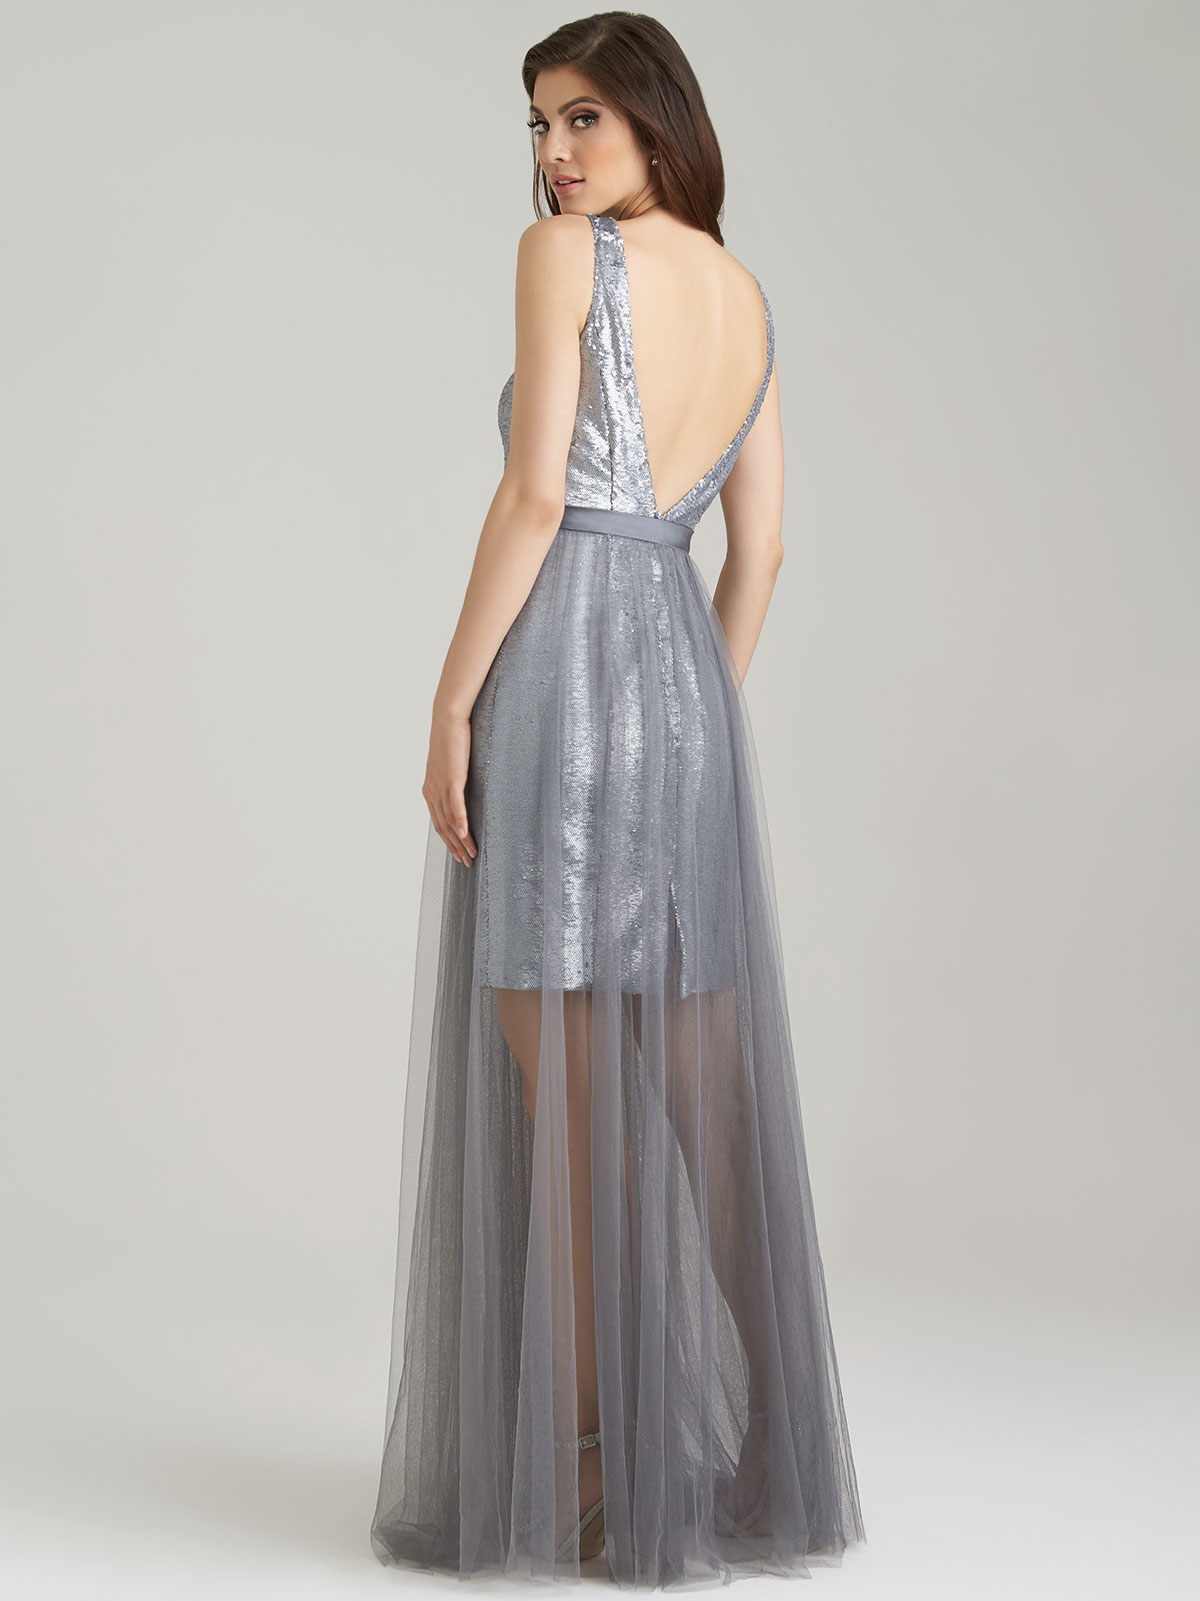 Allure 1470 sequin v neck bridesmaid dressdimitradesigns tulle a line allure bridesmaid dress 1470 ombrellifo Choice Image